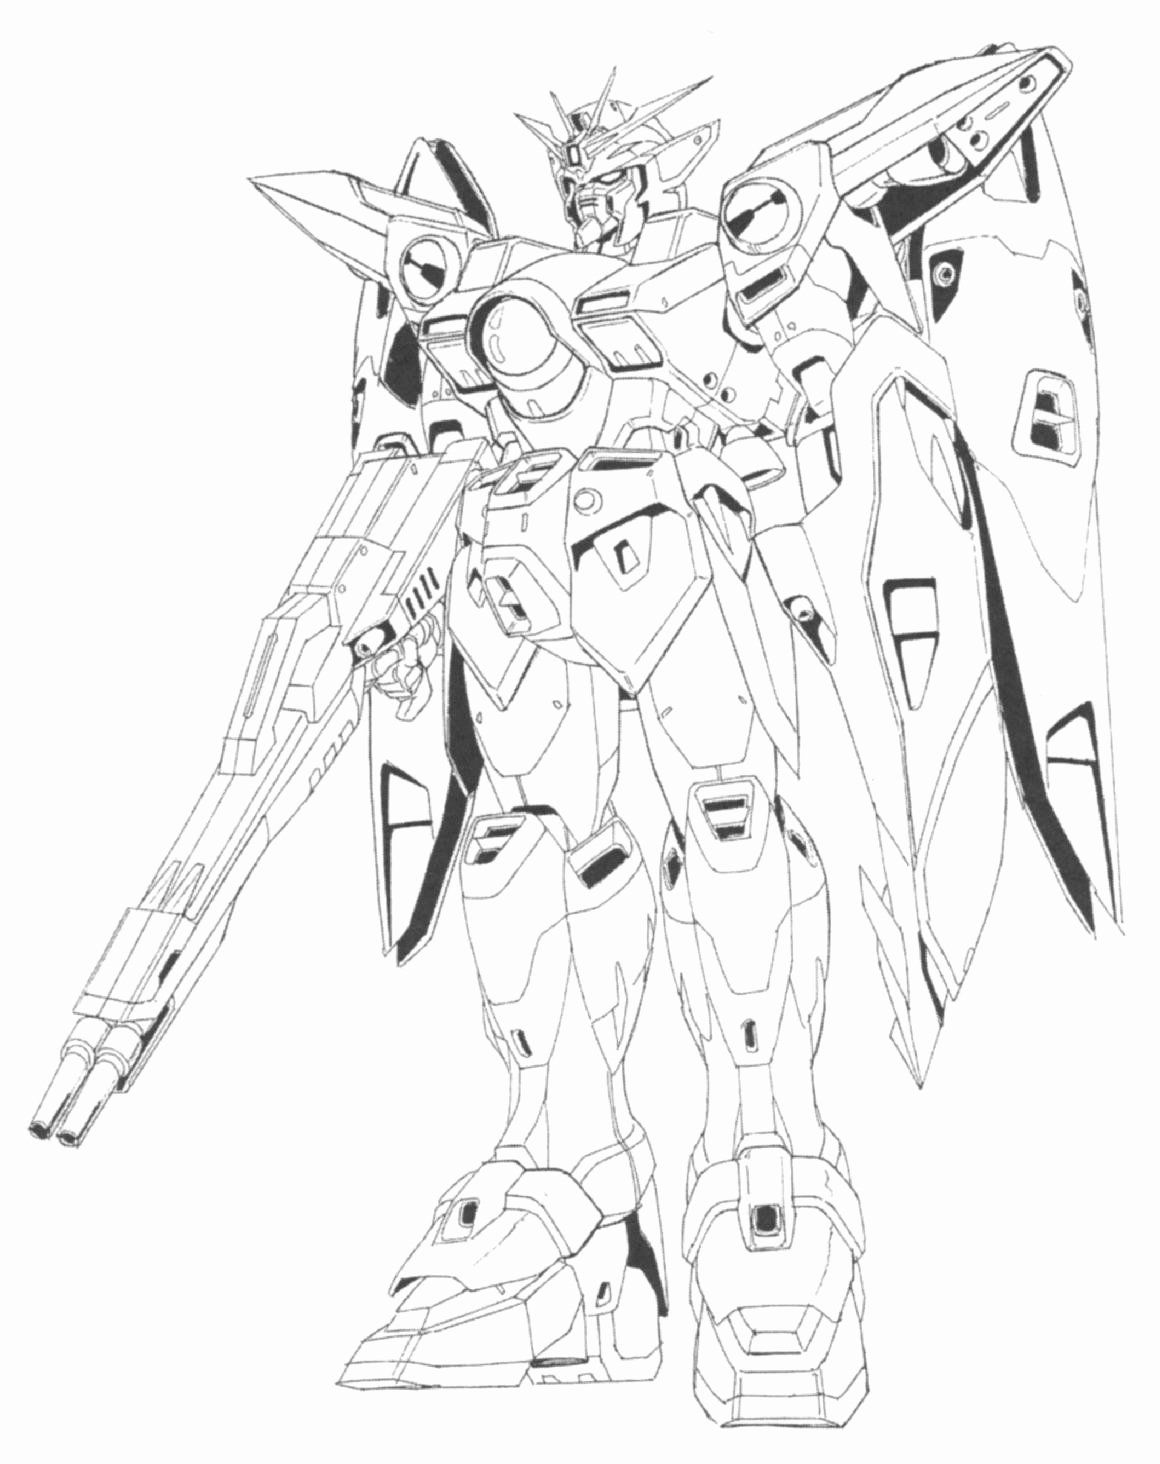 Mobile Suit Gundam 00 Anime Coloring Pages Printable Ideas Of Gundam Coloring Pages Colo In 2020 Sailor Moon Coloring Pages Moon Coloring Pages Mobile Suit Gundam Wing